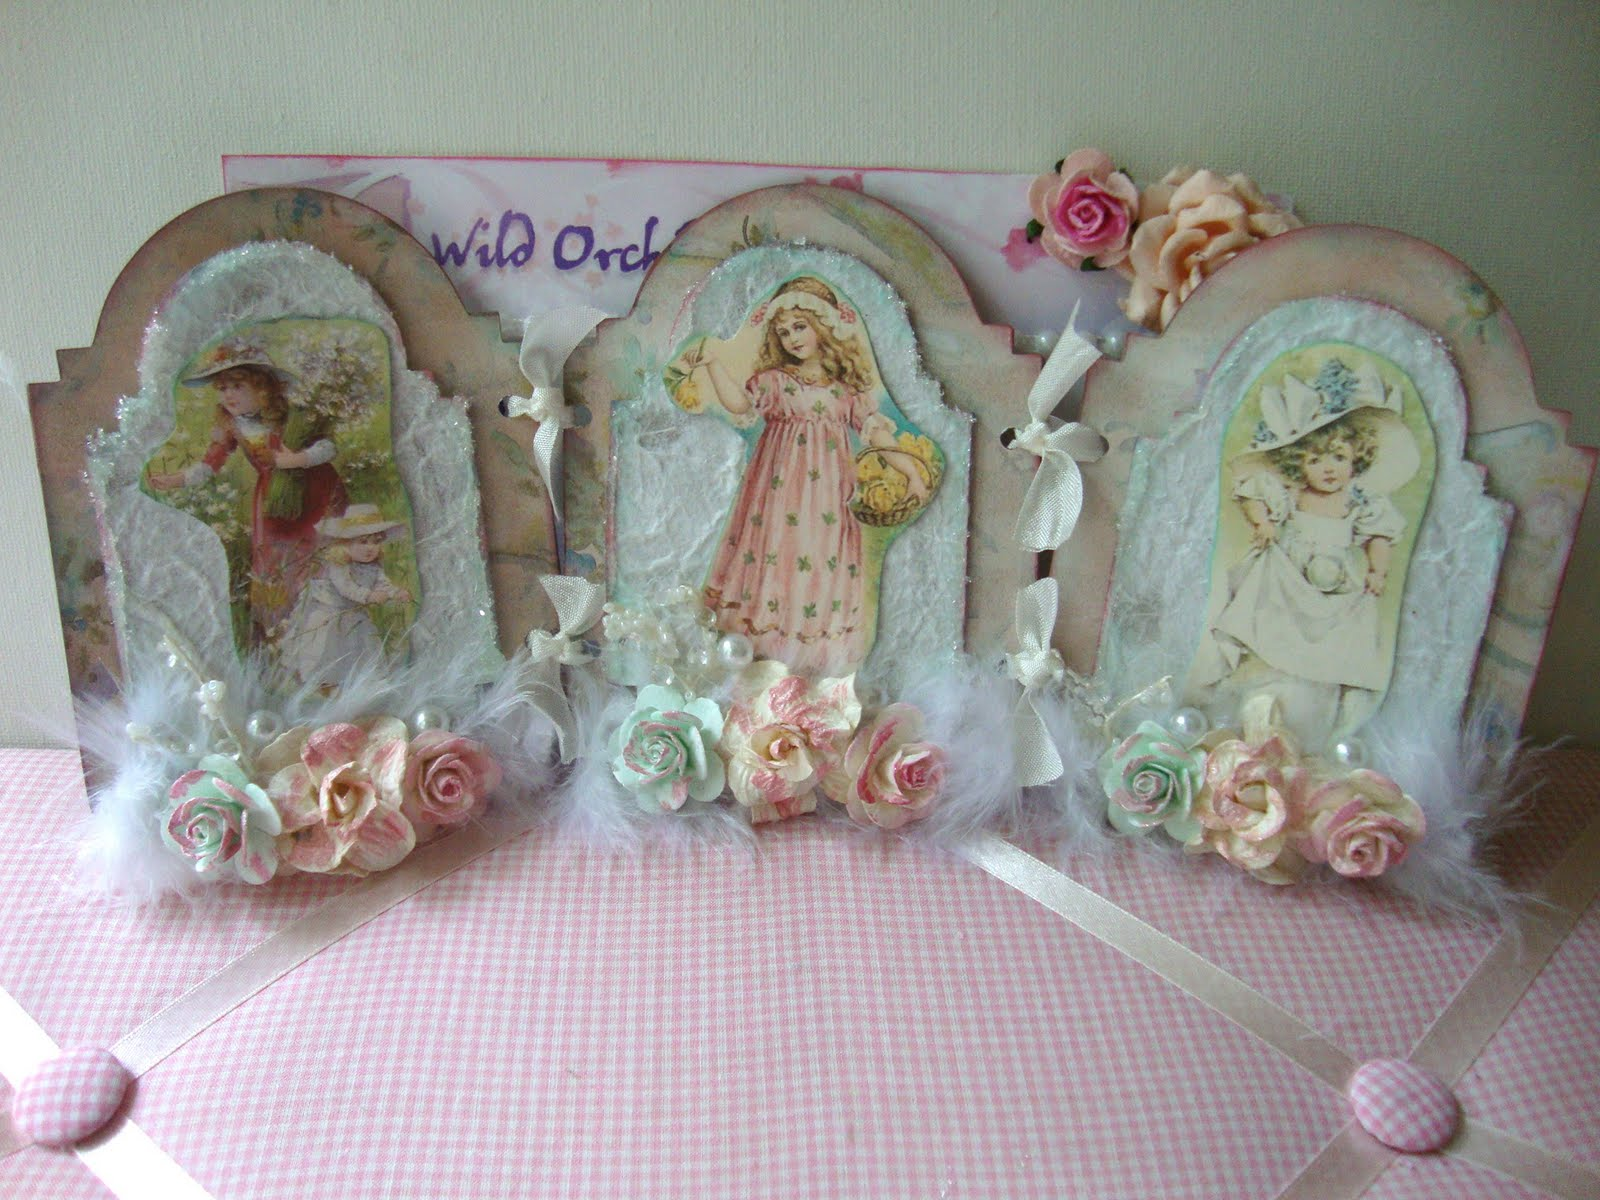 Shabby Chic Crafts To Make And Sell Html | myideasbedroom.com